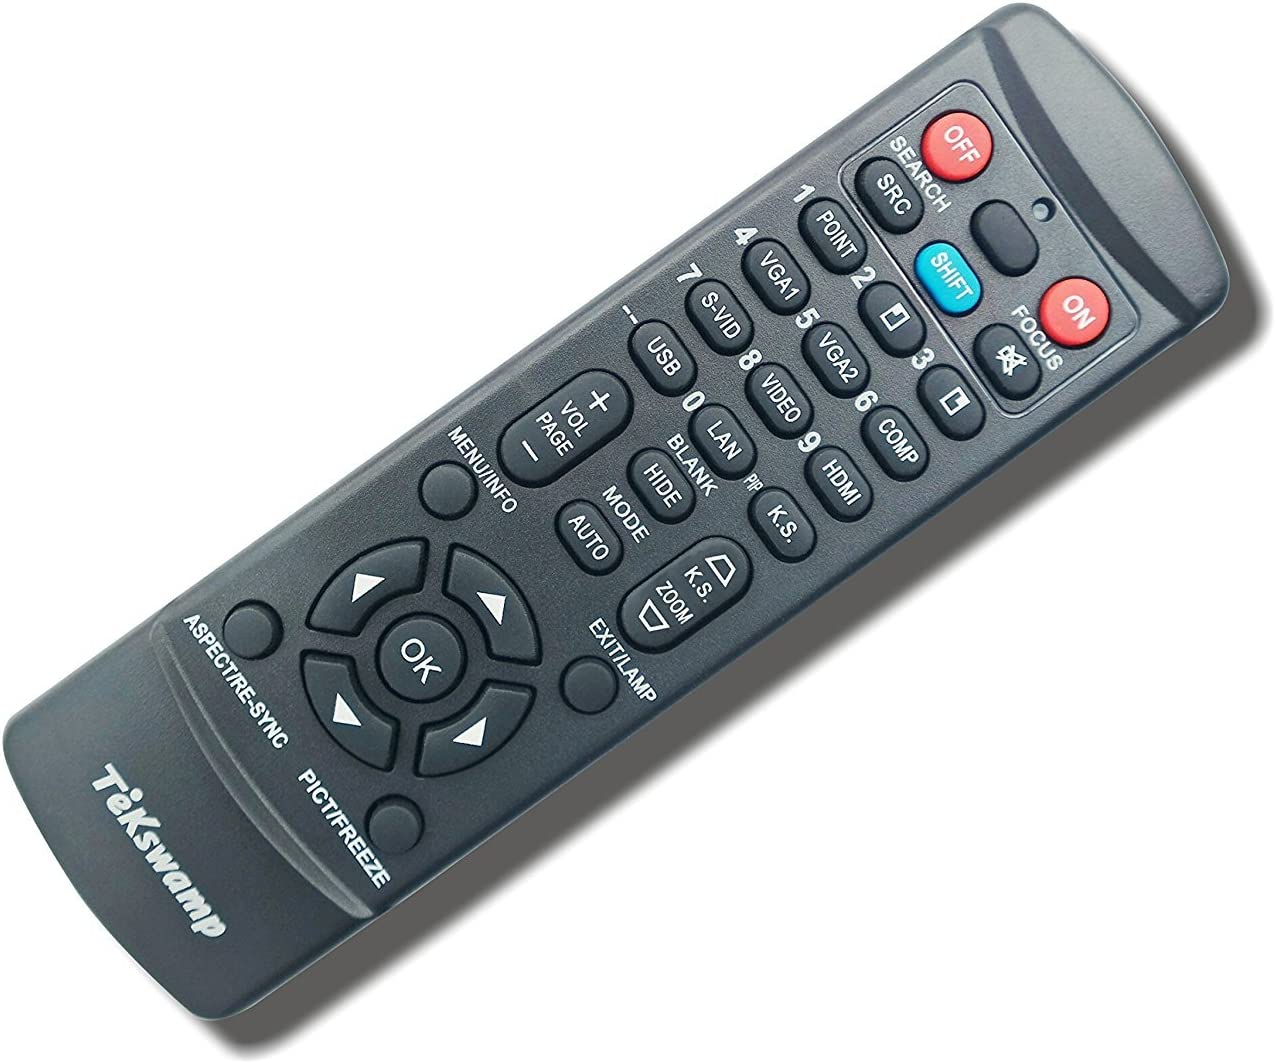 2021 spring and summer new TeKswamp Video Projector Remote San Jose Mall Control 822p for Epson